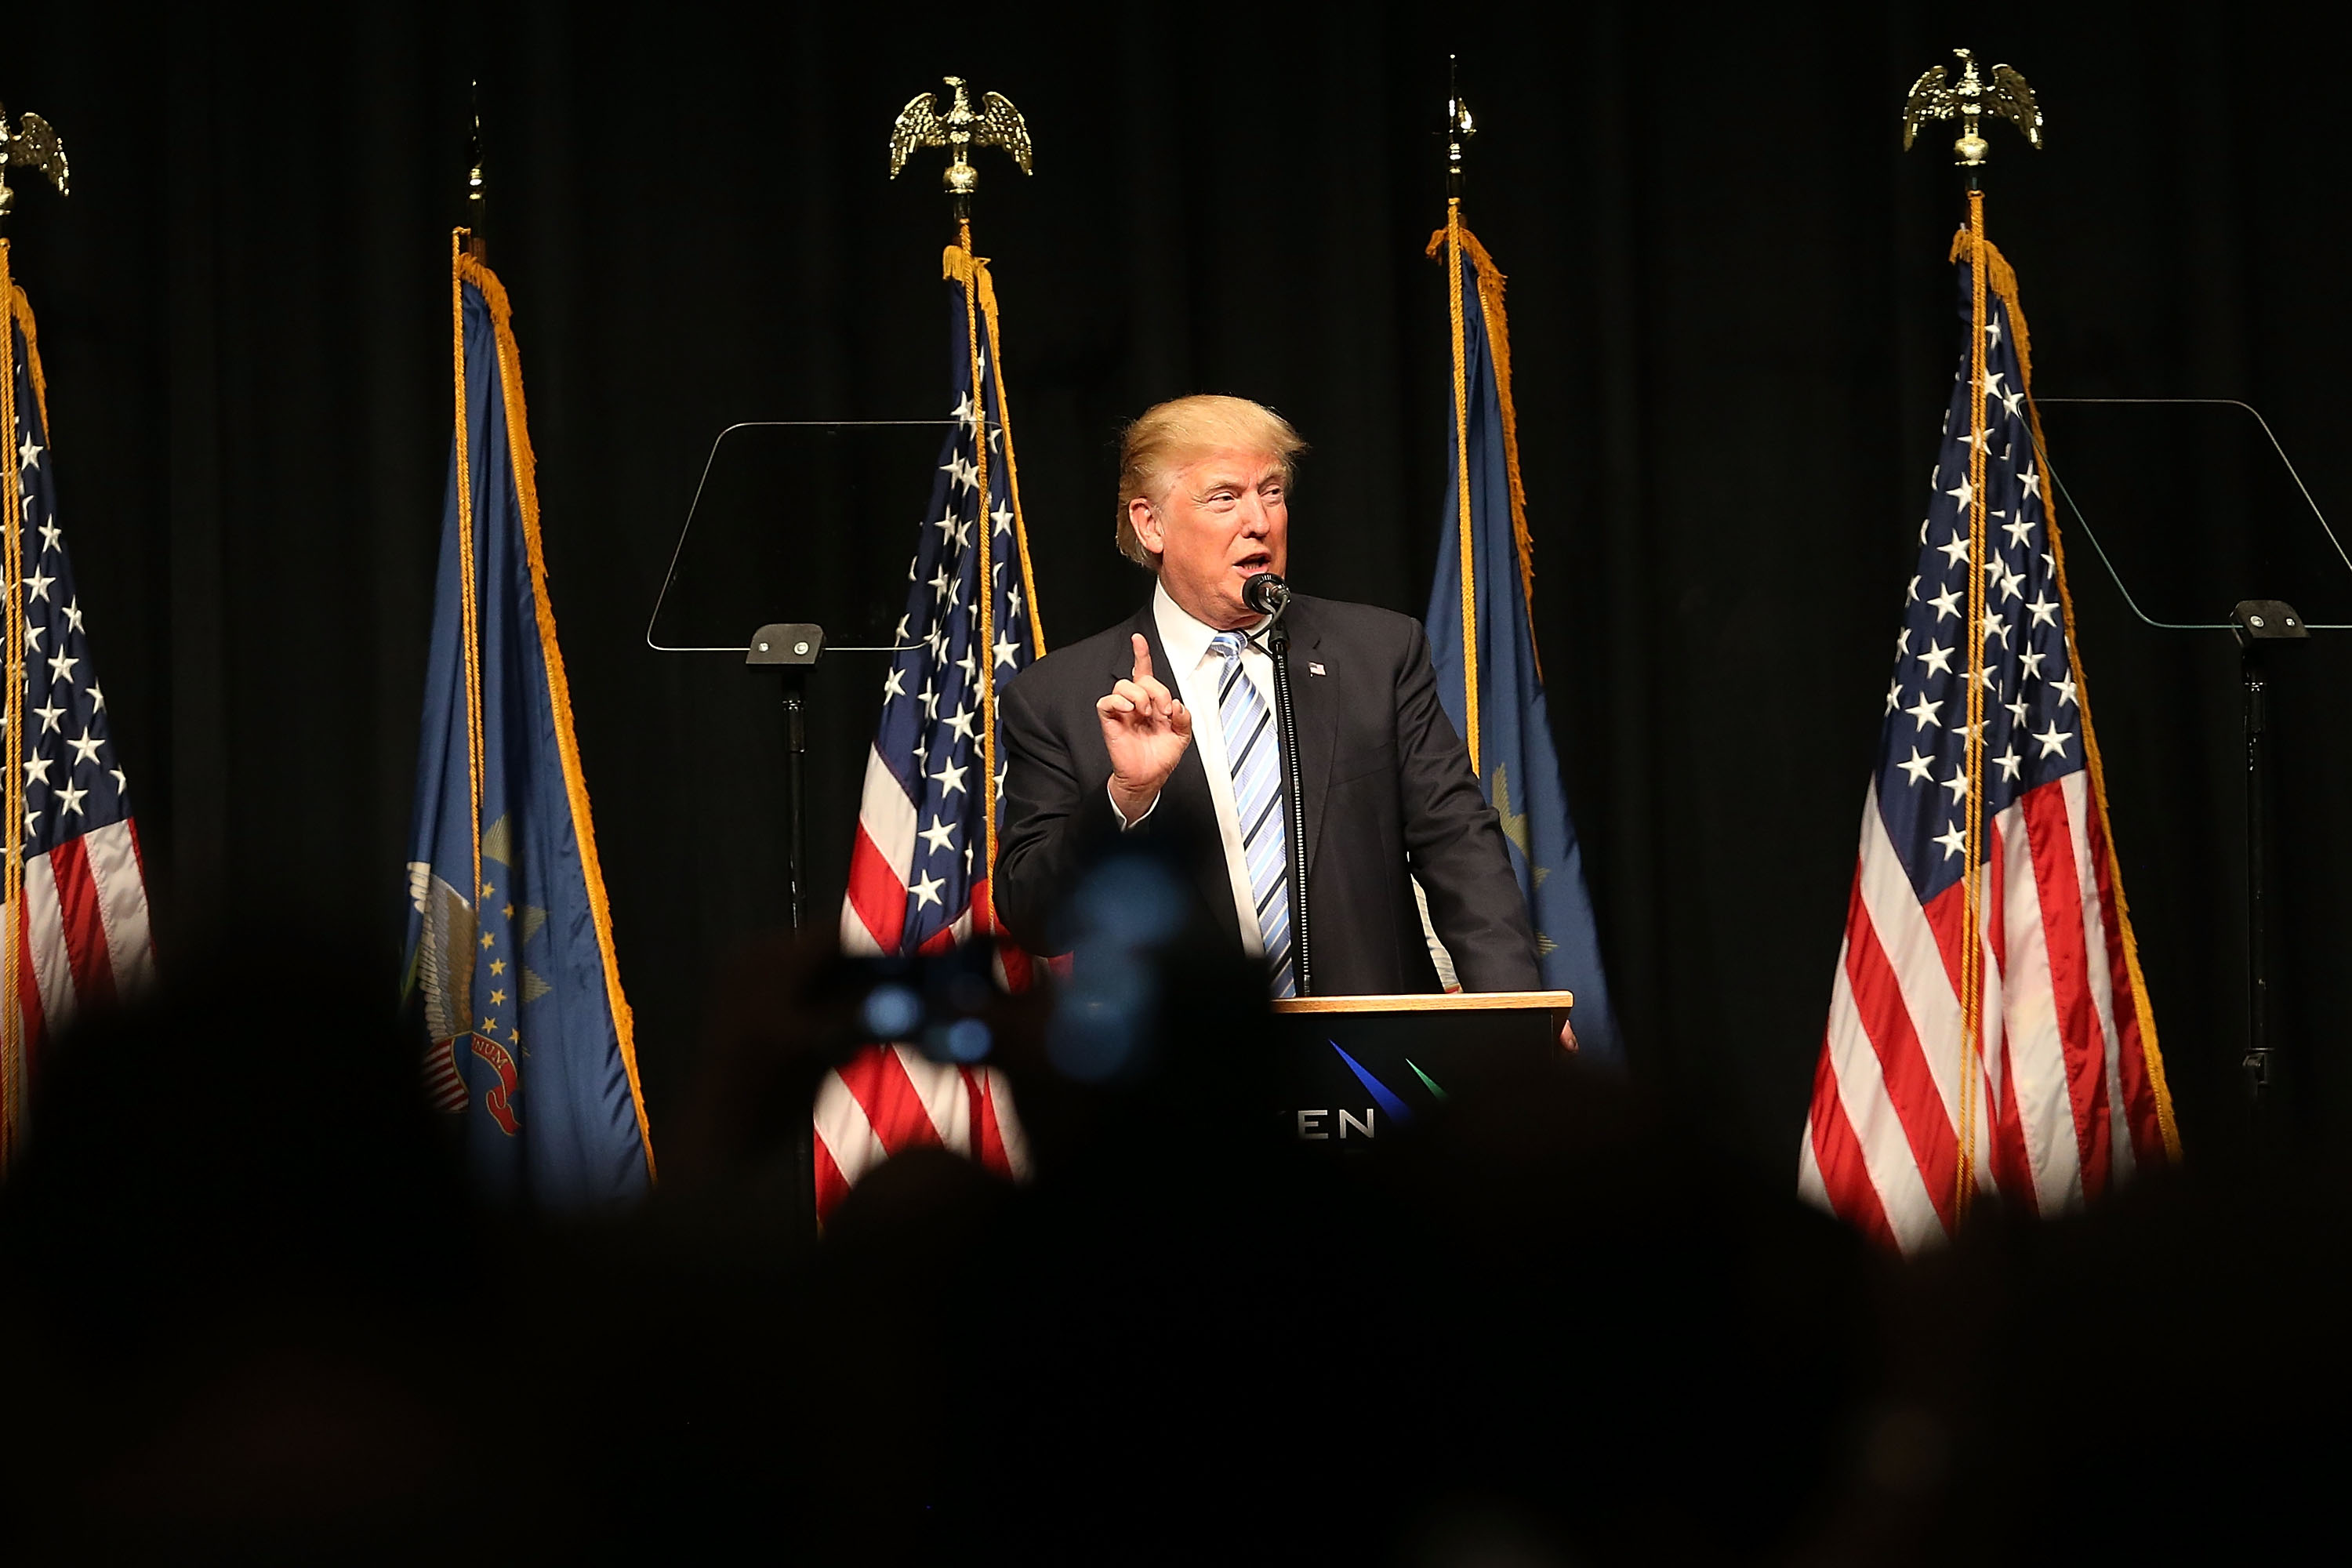 Republican presidential candidate Donald Trump speaks on energy policy on May 26, 2016 in Bismarck, North Dakota.